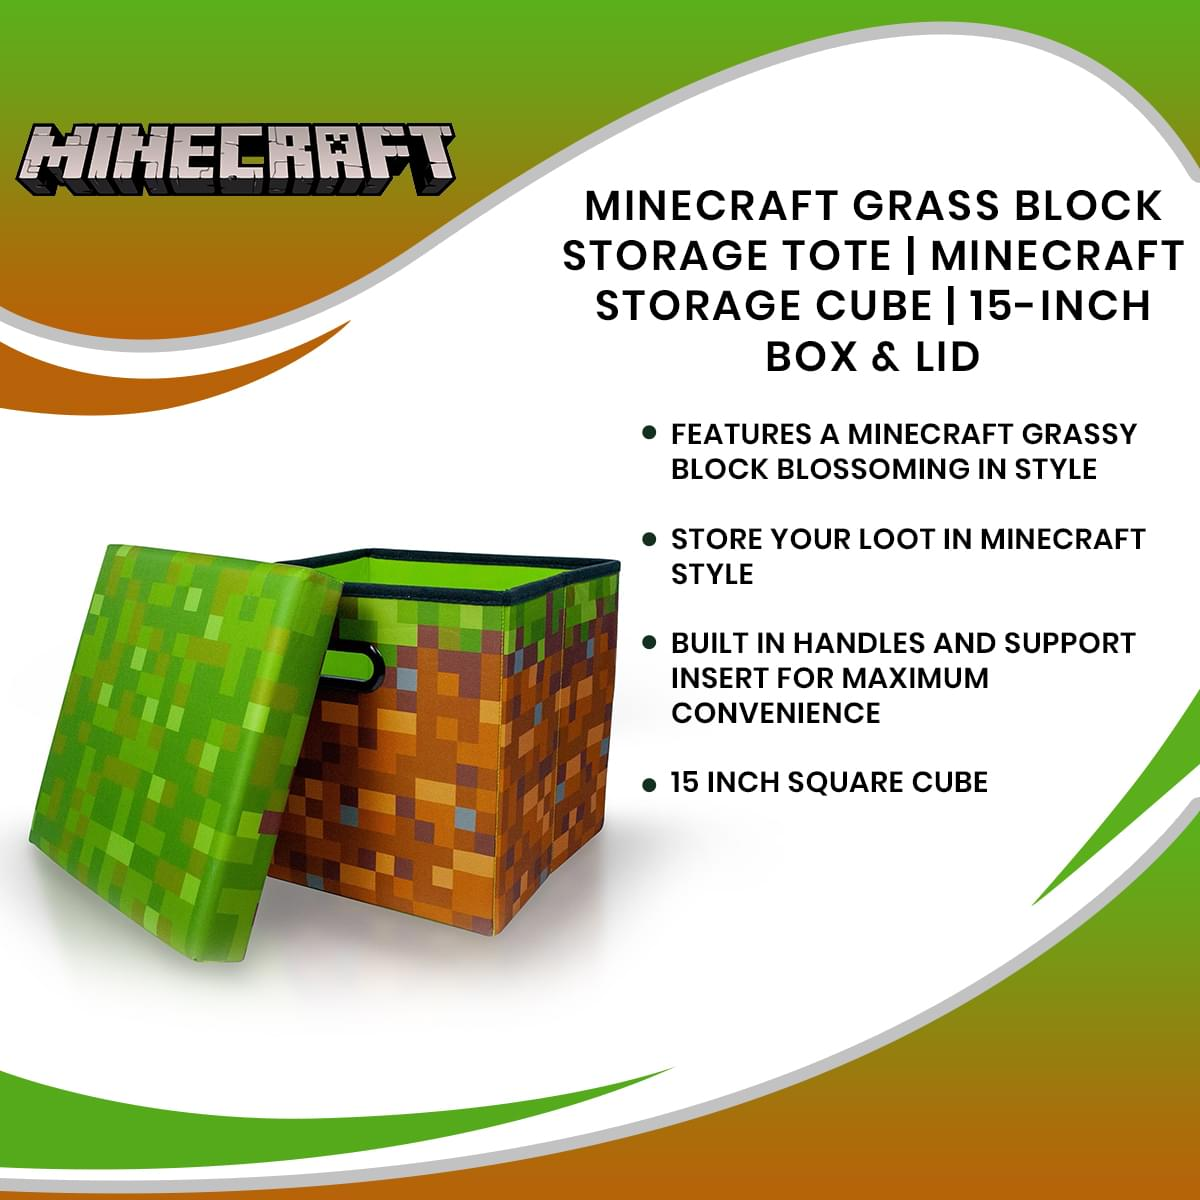 Minecraft Grass Block Storage Tote | Minecraft Storage Cube | 15-Inch Box & Lid